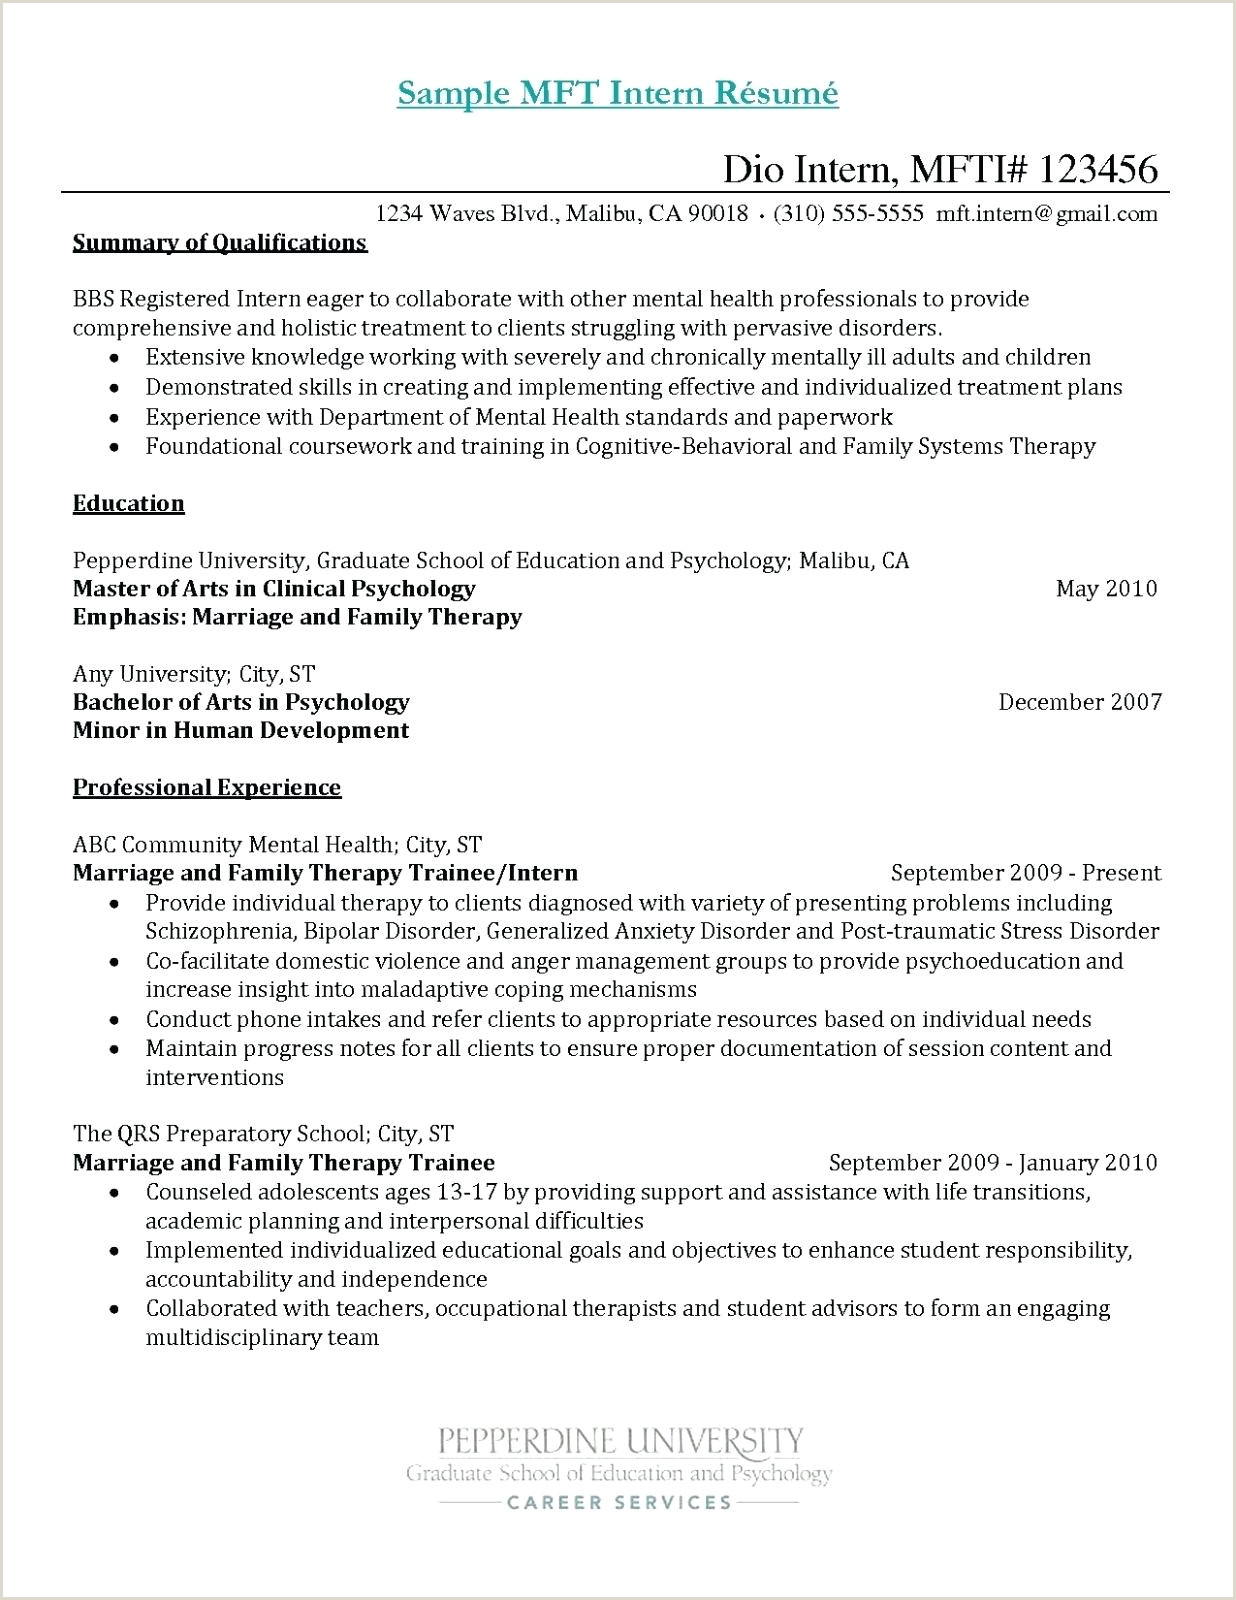 Marriage and Family therapist Resume 10 Counselor Resumes Samples